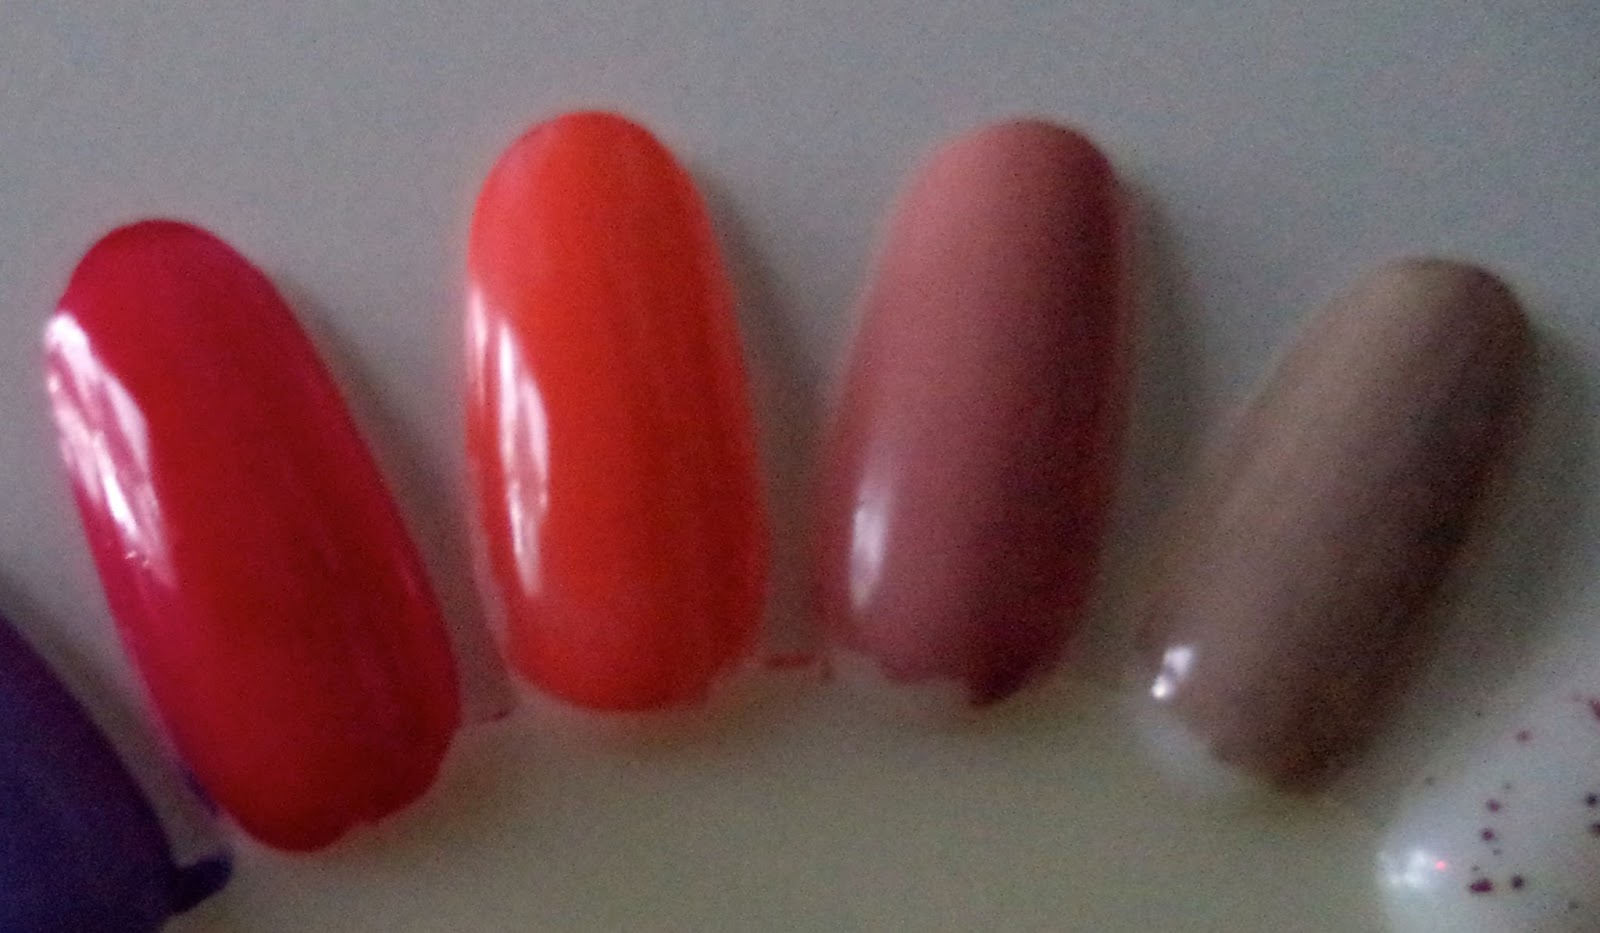 [Review] e.l.f. Essential 15-Piece Nail Polish Set - Limited Edition Smokin Hot, Mango Madness, Nude, and Desert Haze